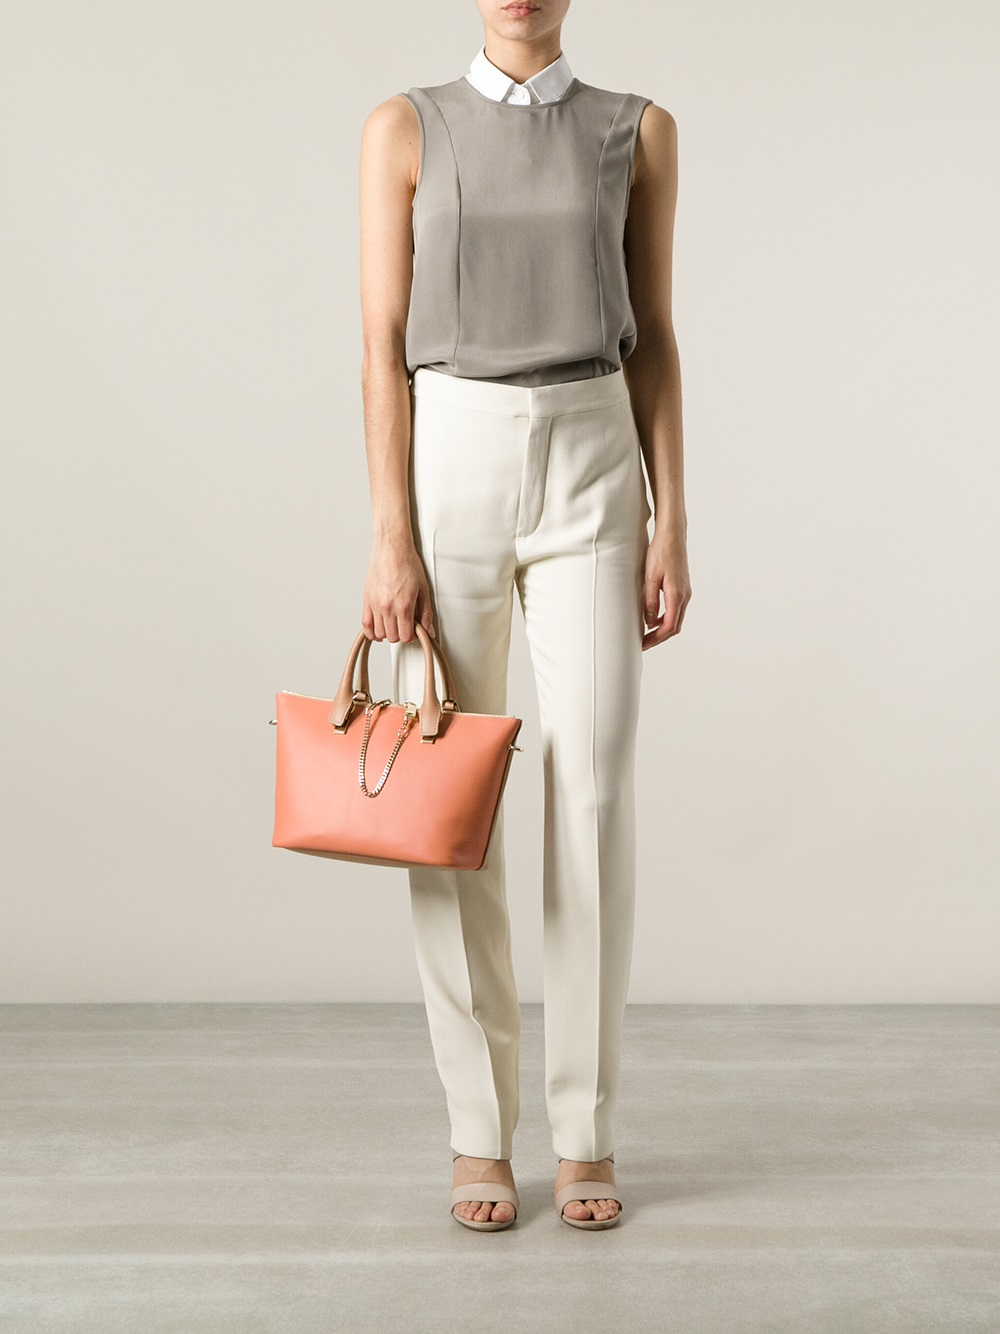 Chloé Baylee Small Tote in Natural